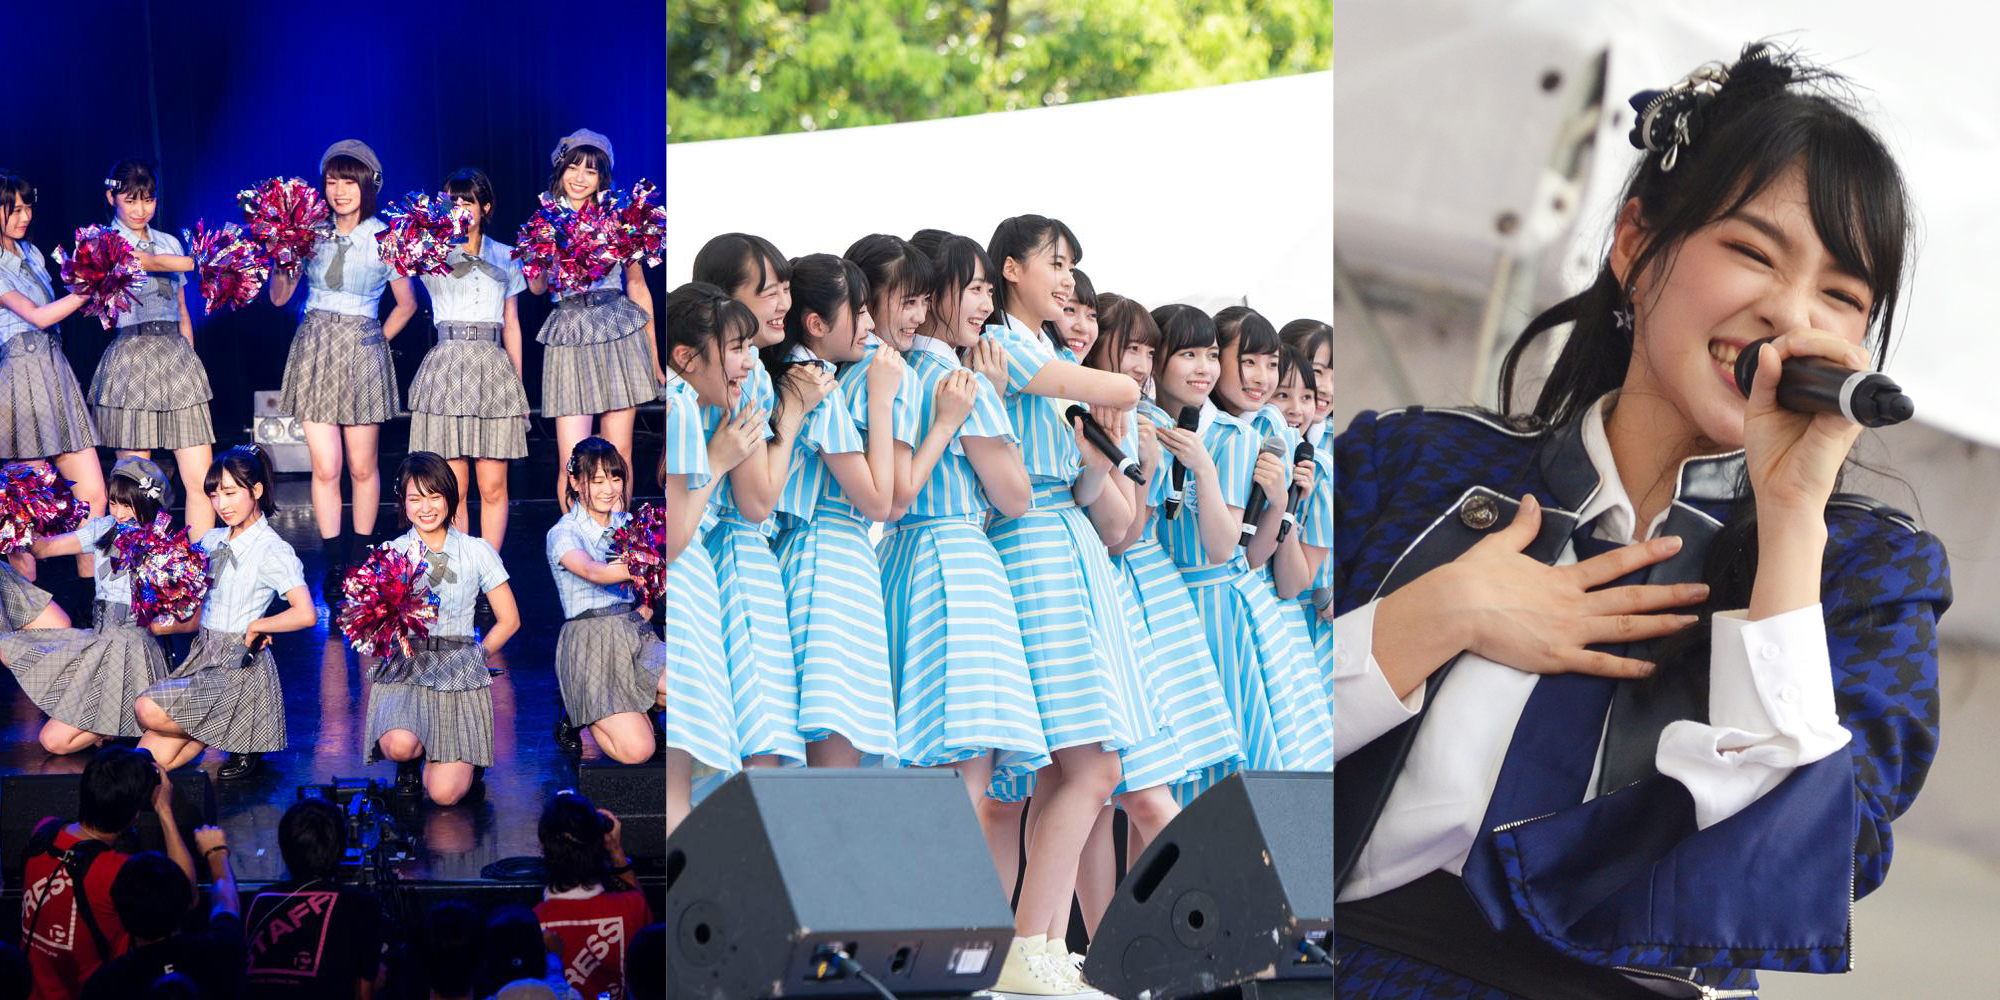 Tif2018 akb48 team 8 stu48 and bnk48 showed their fresh styles tokyo idol festival 2018 akb48 team 8 stu48 and bnk48 charmed their way to the stage thecheapjerseys Gallery